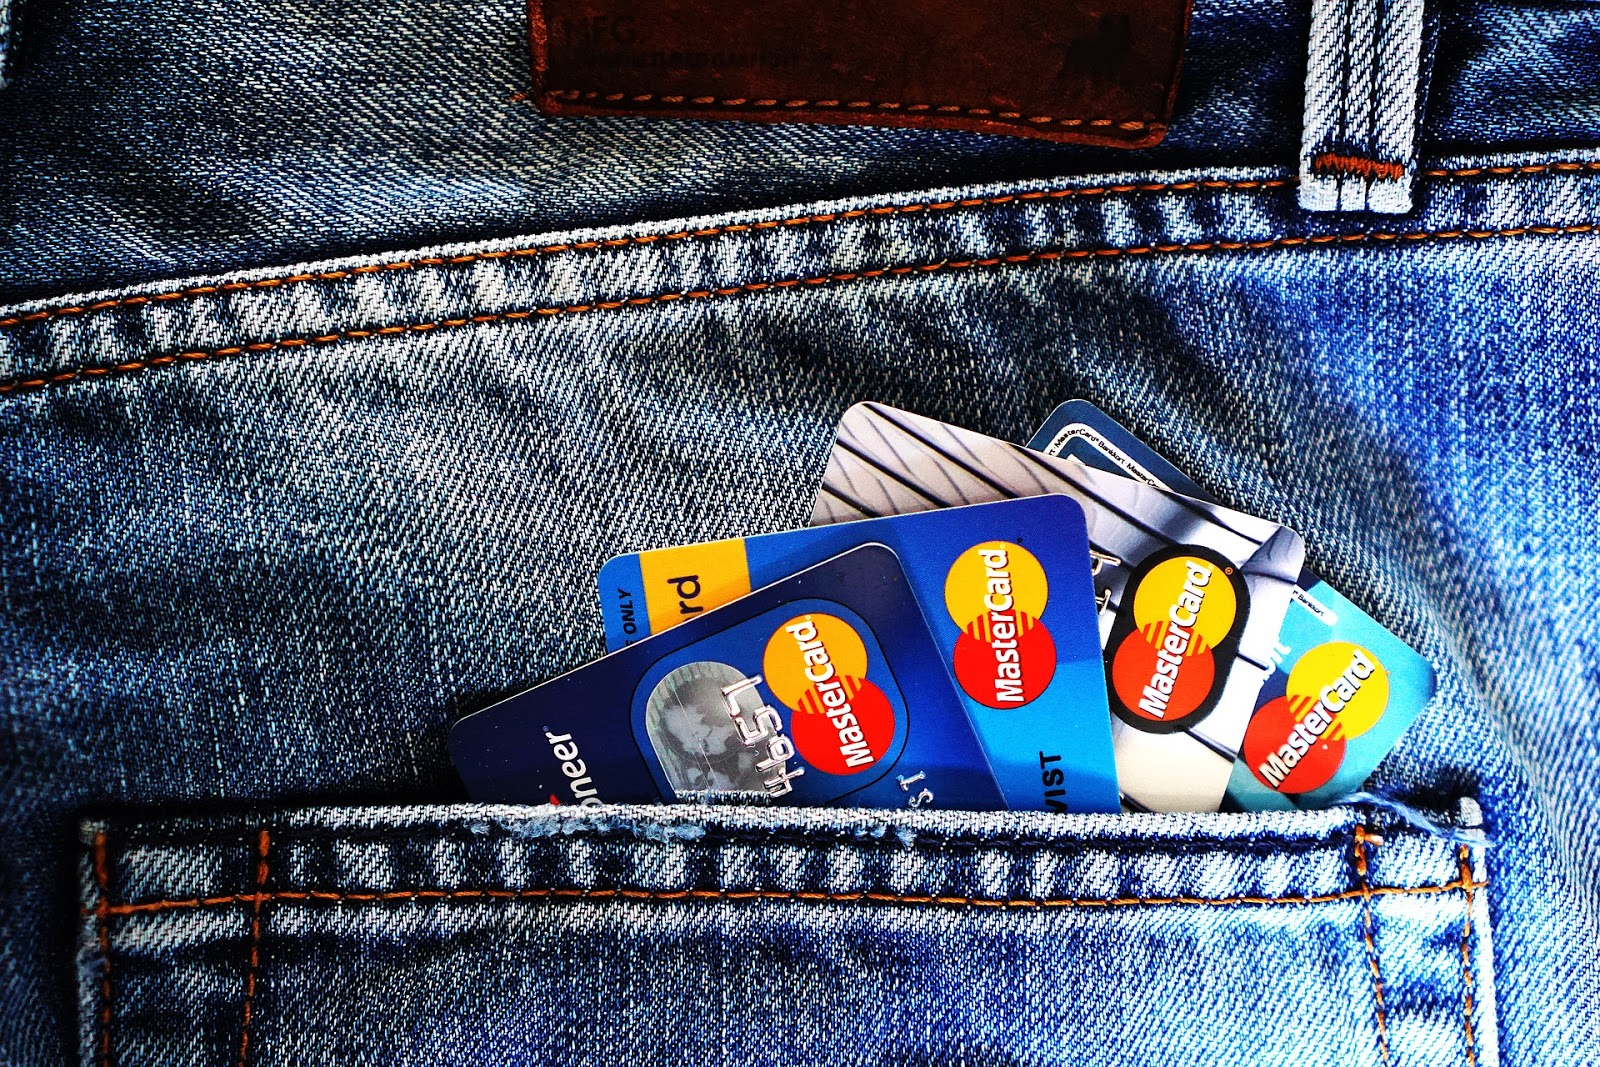 What You Need To Know About Accepting Credit Cards Online